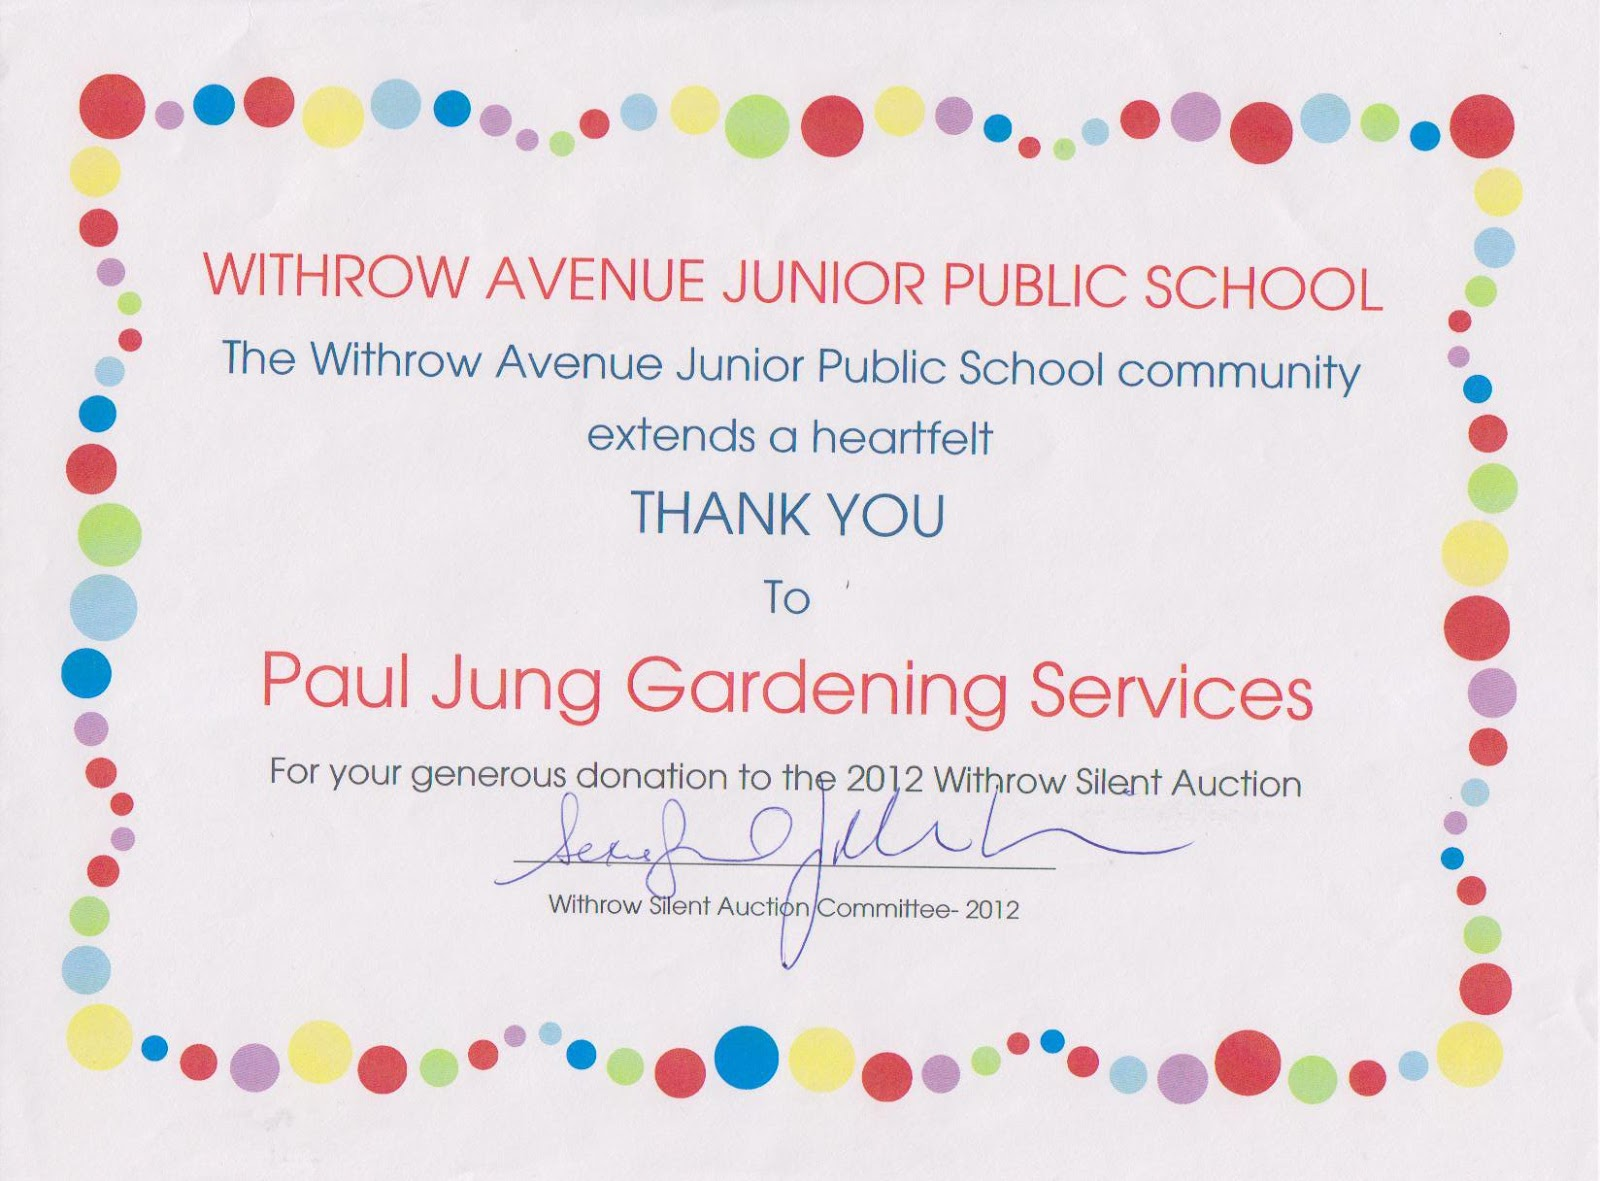 Thank You certificate from Withrow Ave. Jr. Public School 2012 Silent Auction Fundraiser